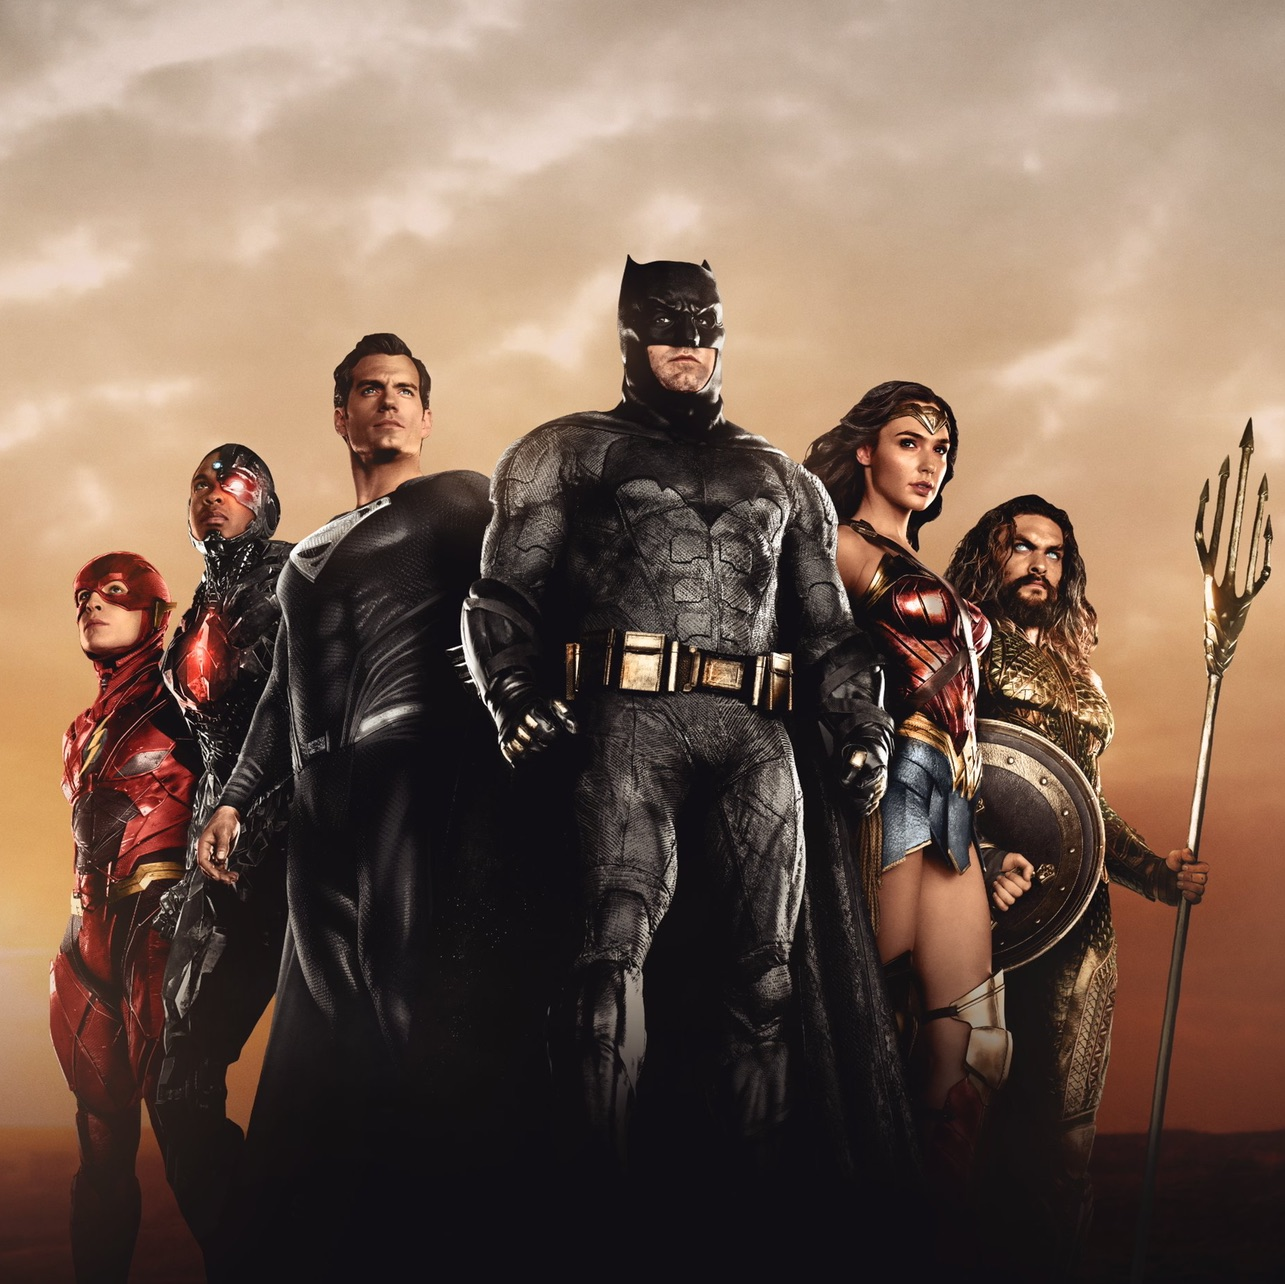 Every Movie from DC Extended Universe